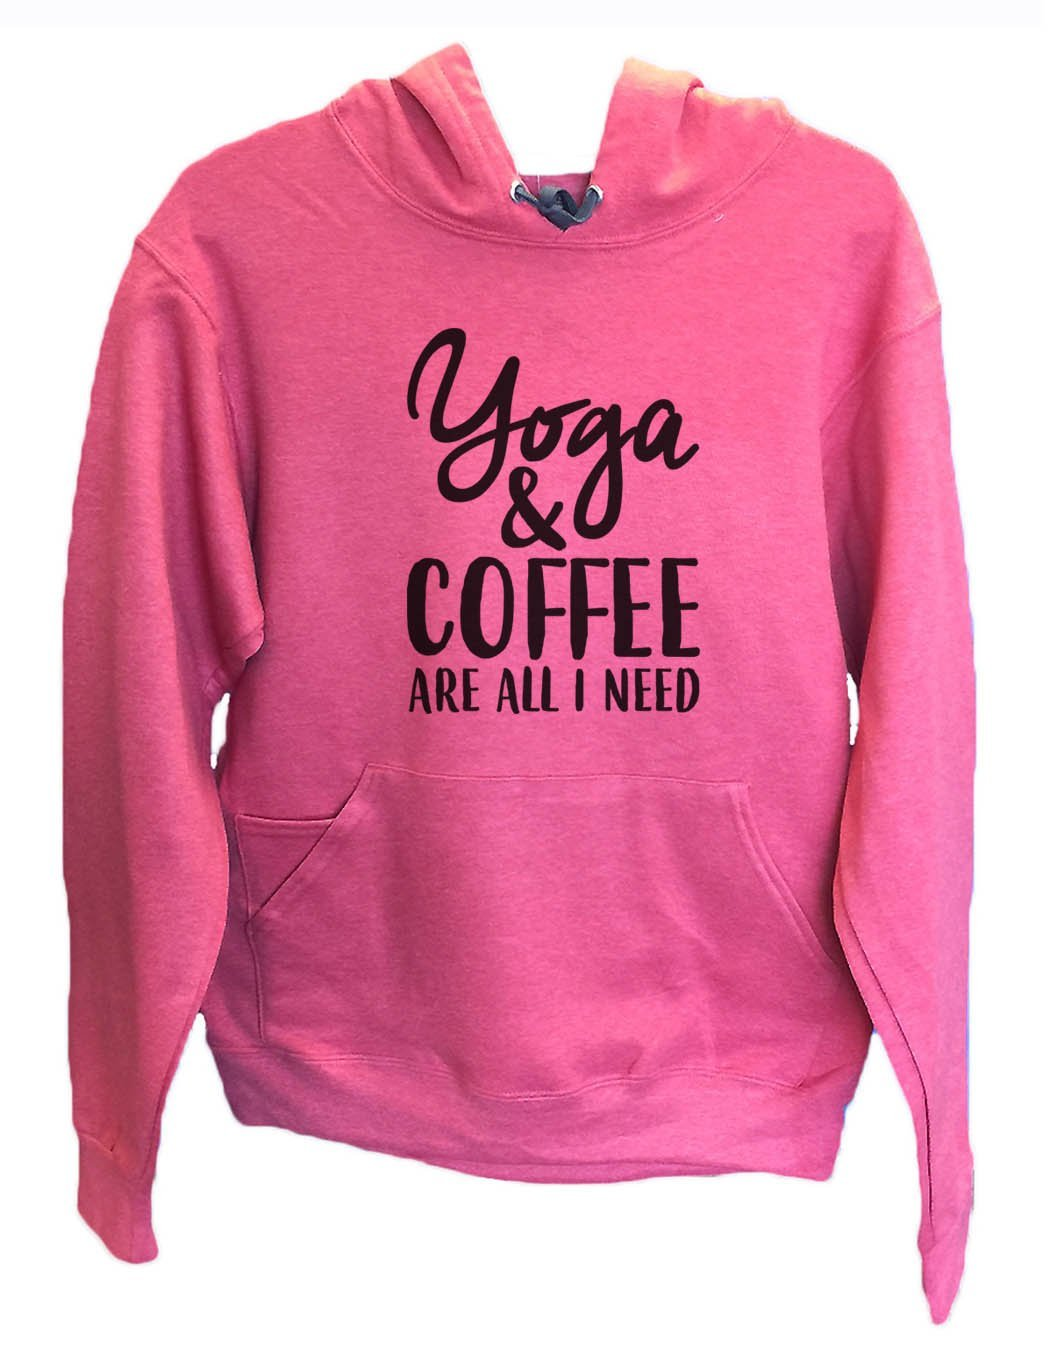 UNISEX HOODIE - Yoga & Coffee Are All I Need - FUNNY MENS AND WOMENS HOODED SWEATSHIRTS - 2174 Funny Shirt Small / Cranberry Red